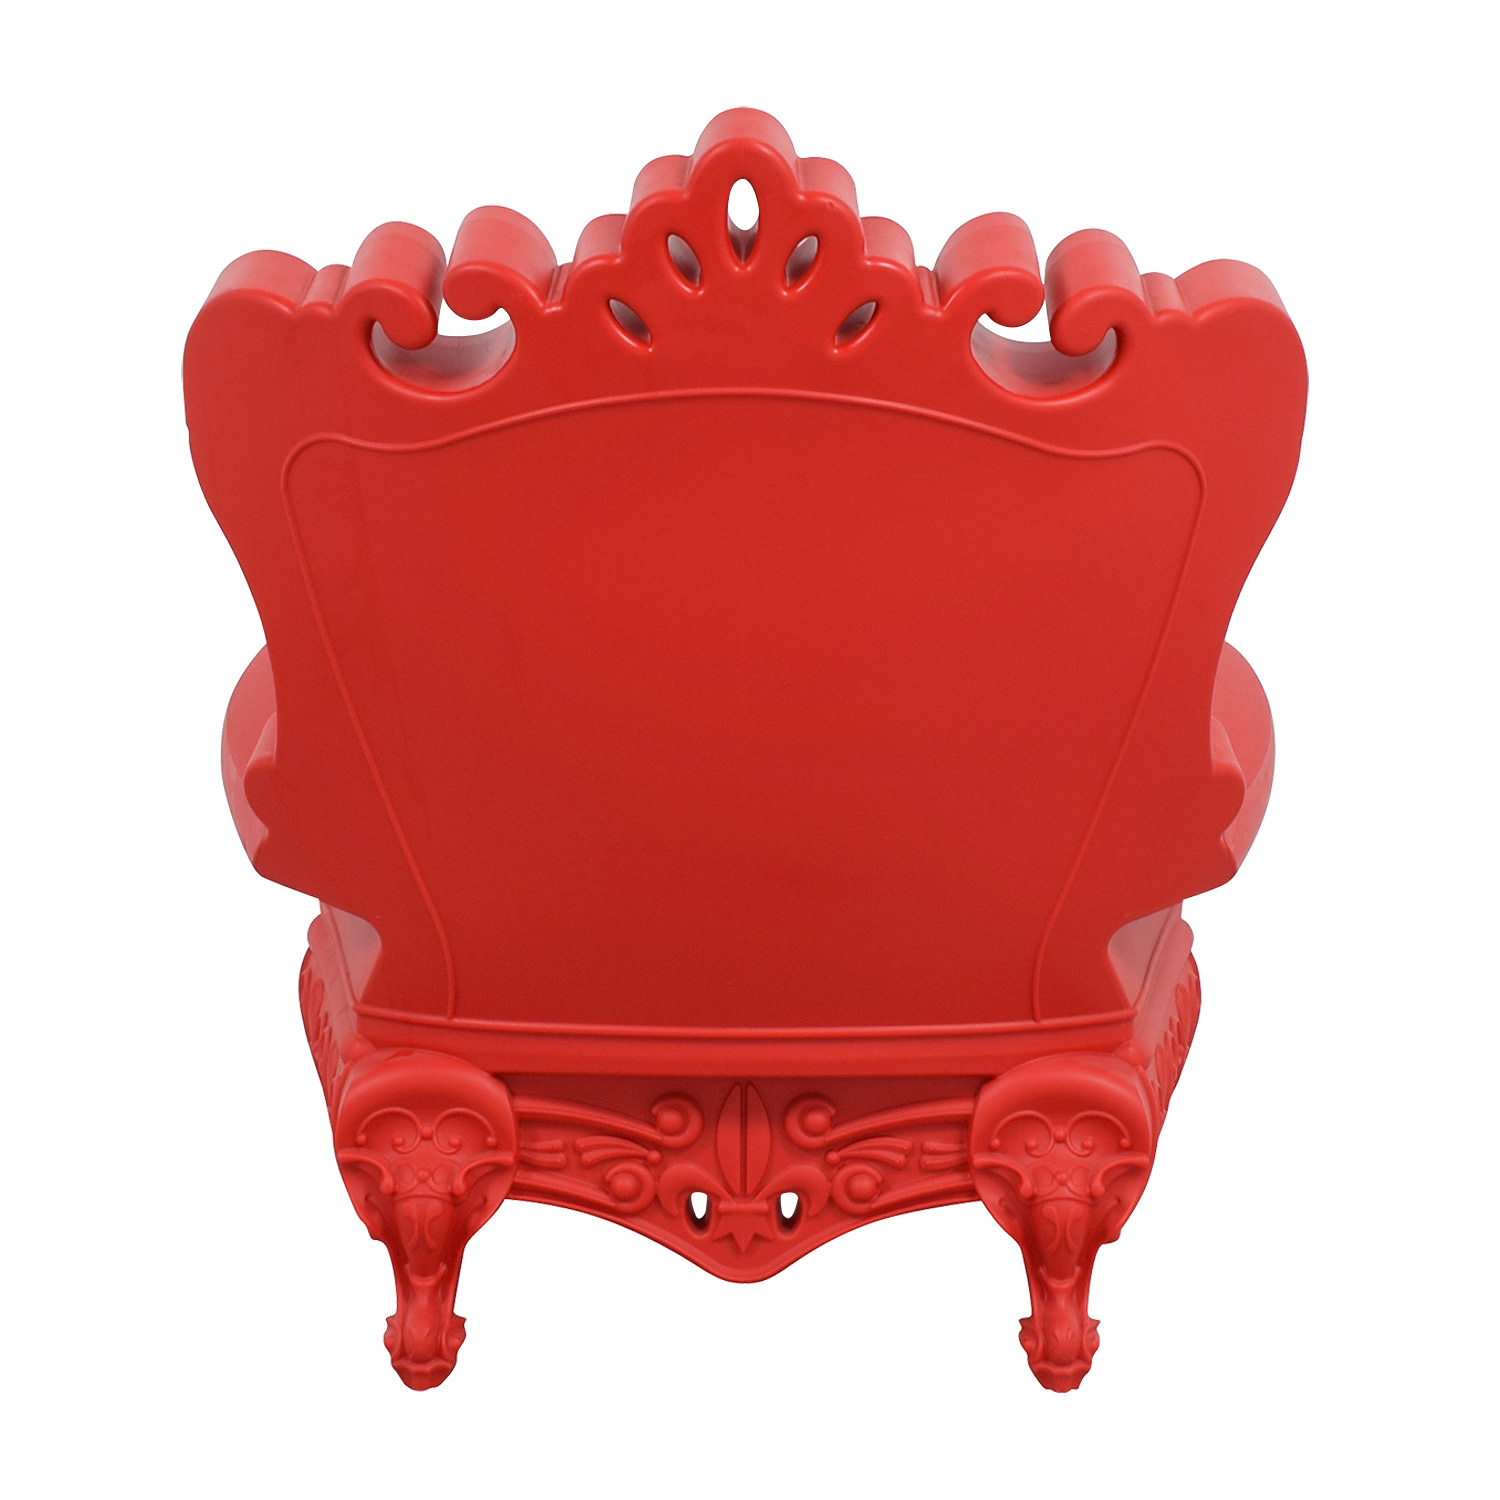 Linvin Linvin Queen of Love Chair Red Passion discount